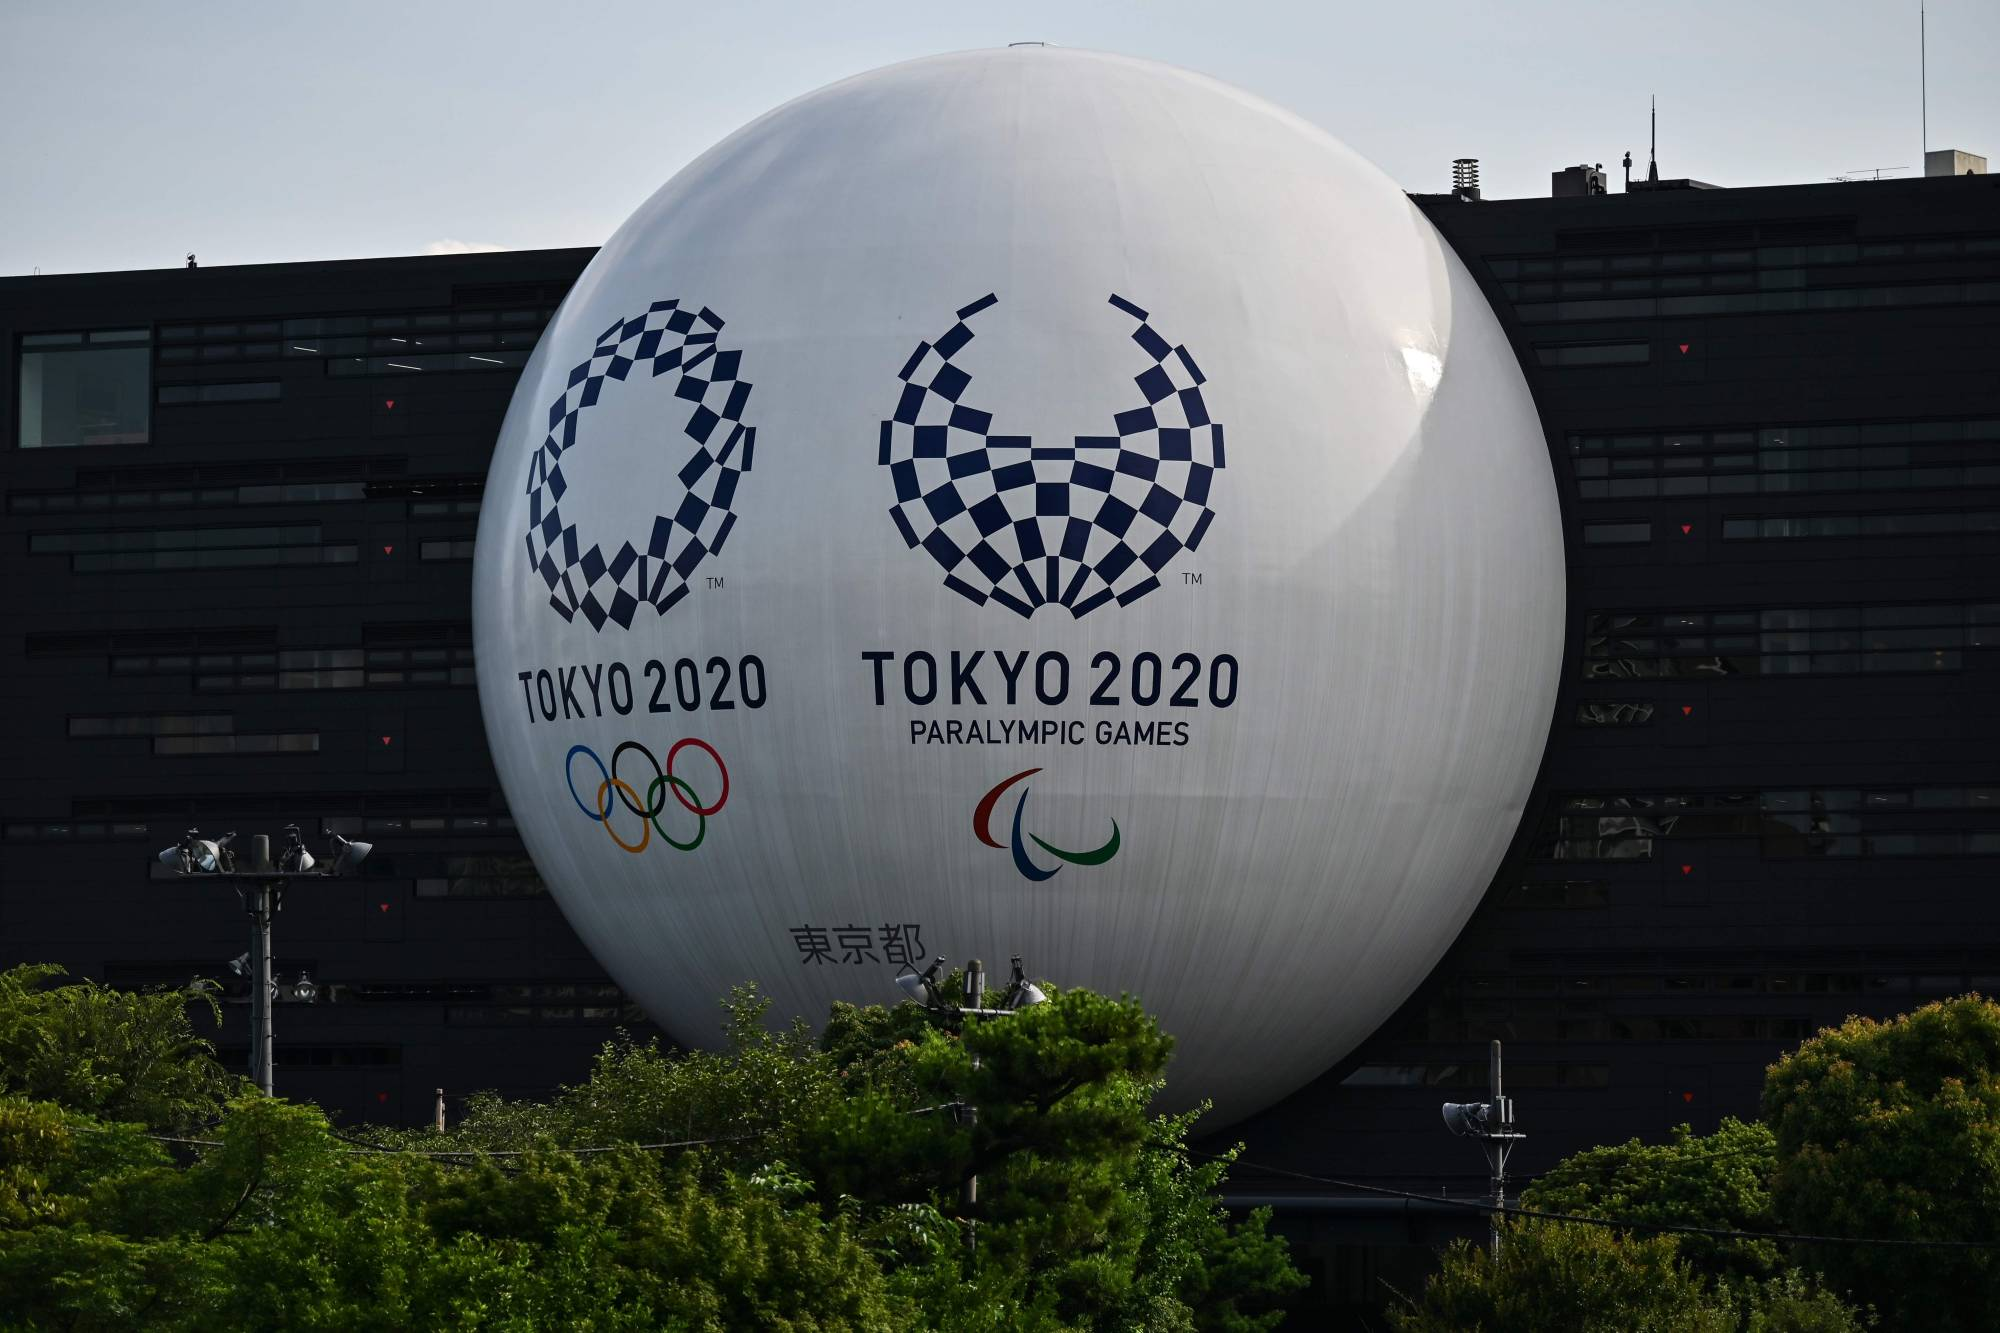 The 2020 Tokyo Olympics will maintain its previously planned slate of venues and schedules when it takes place in July 2021, the games' organizing committee said on Friday. | AFP-JIJI